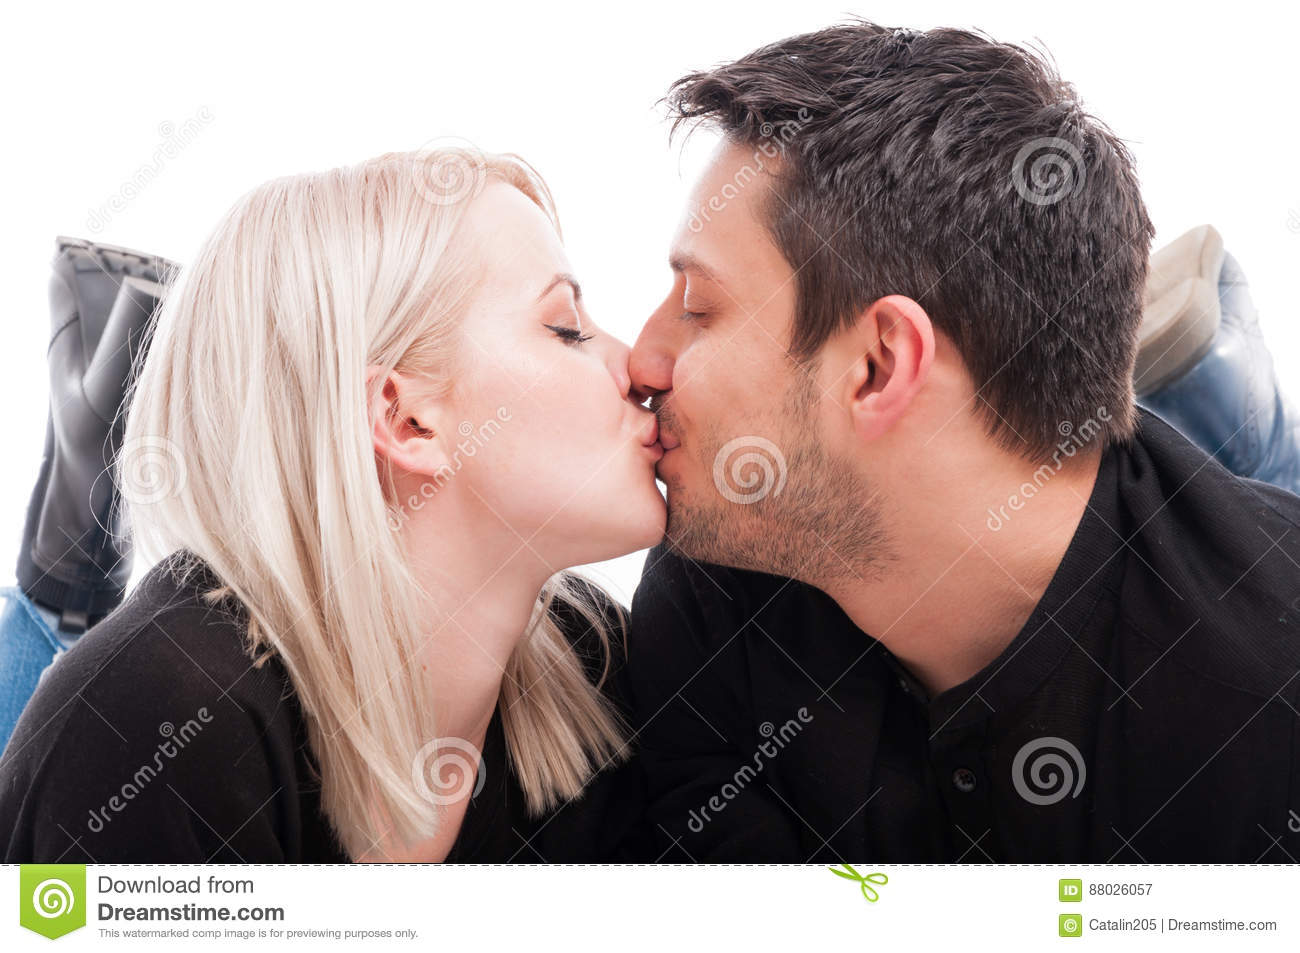 Close up of cute young couple kissing with passion on white studio background